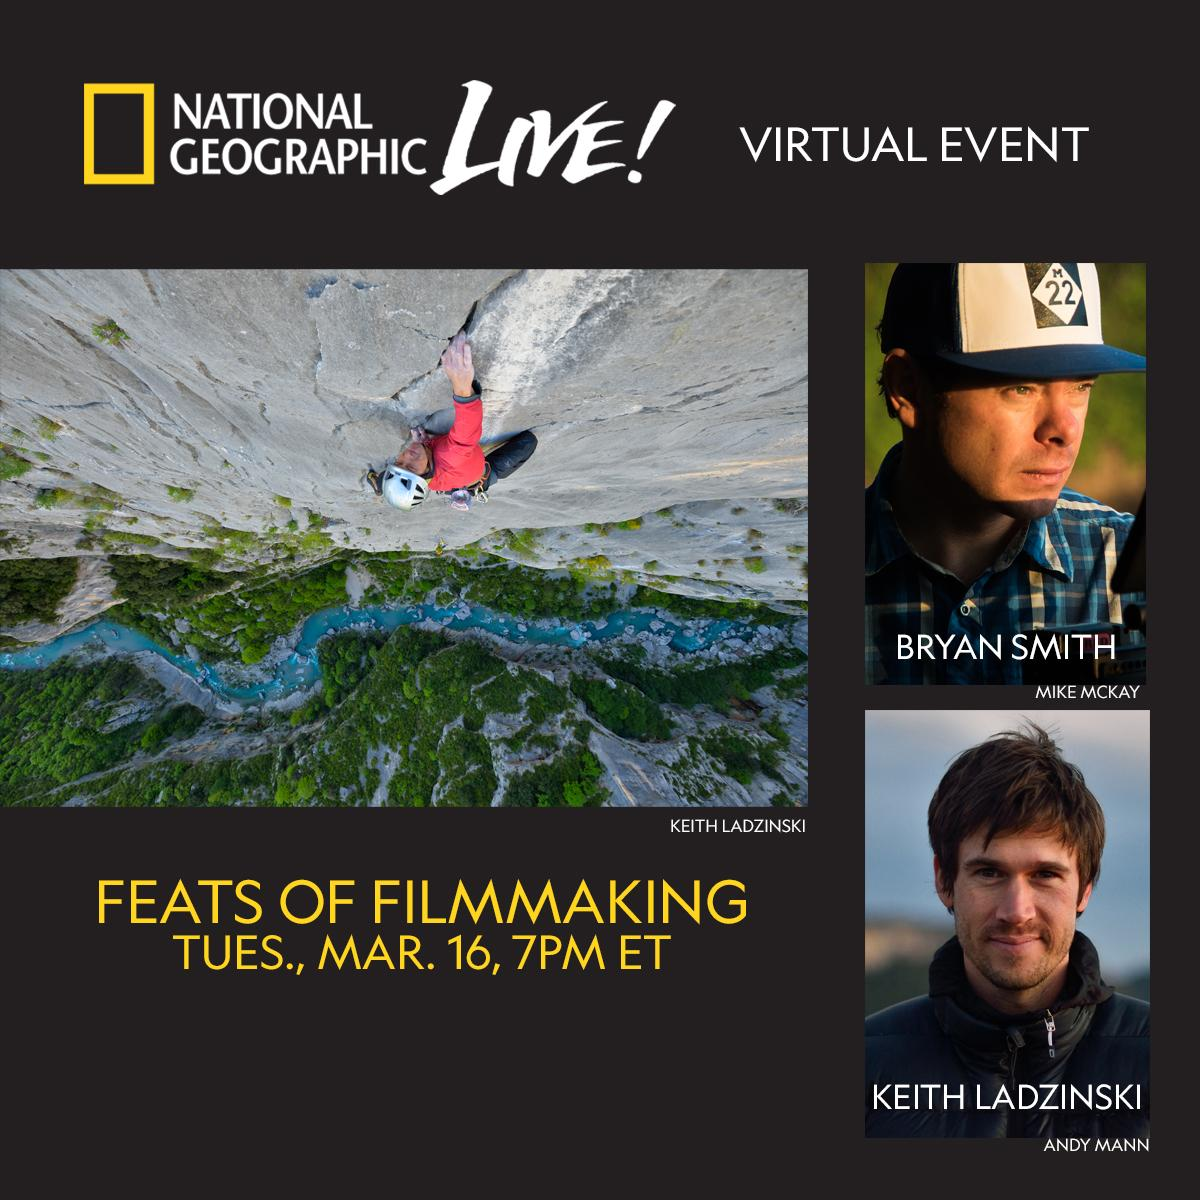 National Geographic Live! Virtual Event - Feats of Filmmaking